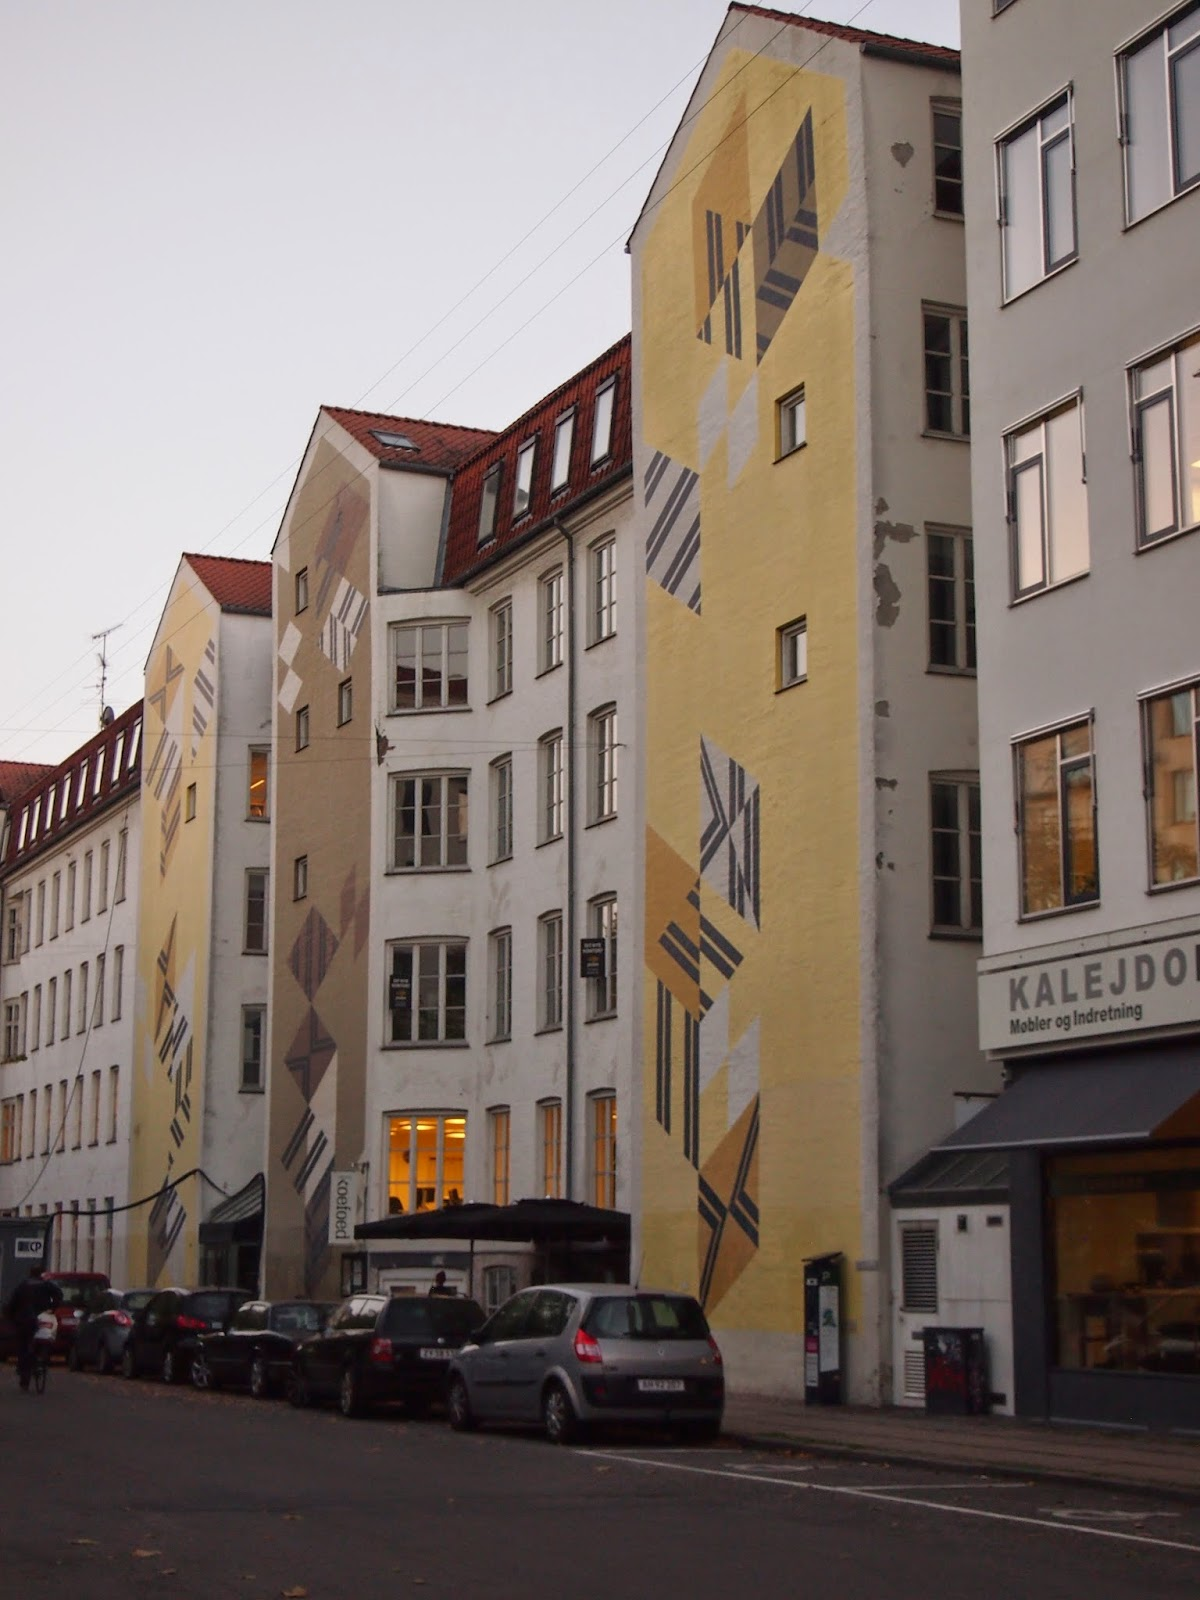 three sets of street art on the sides of a white building in copenhagen